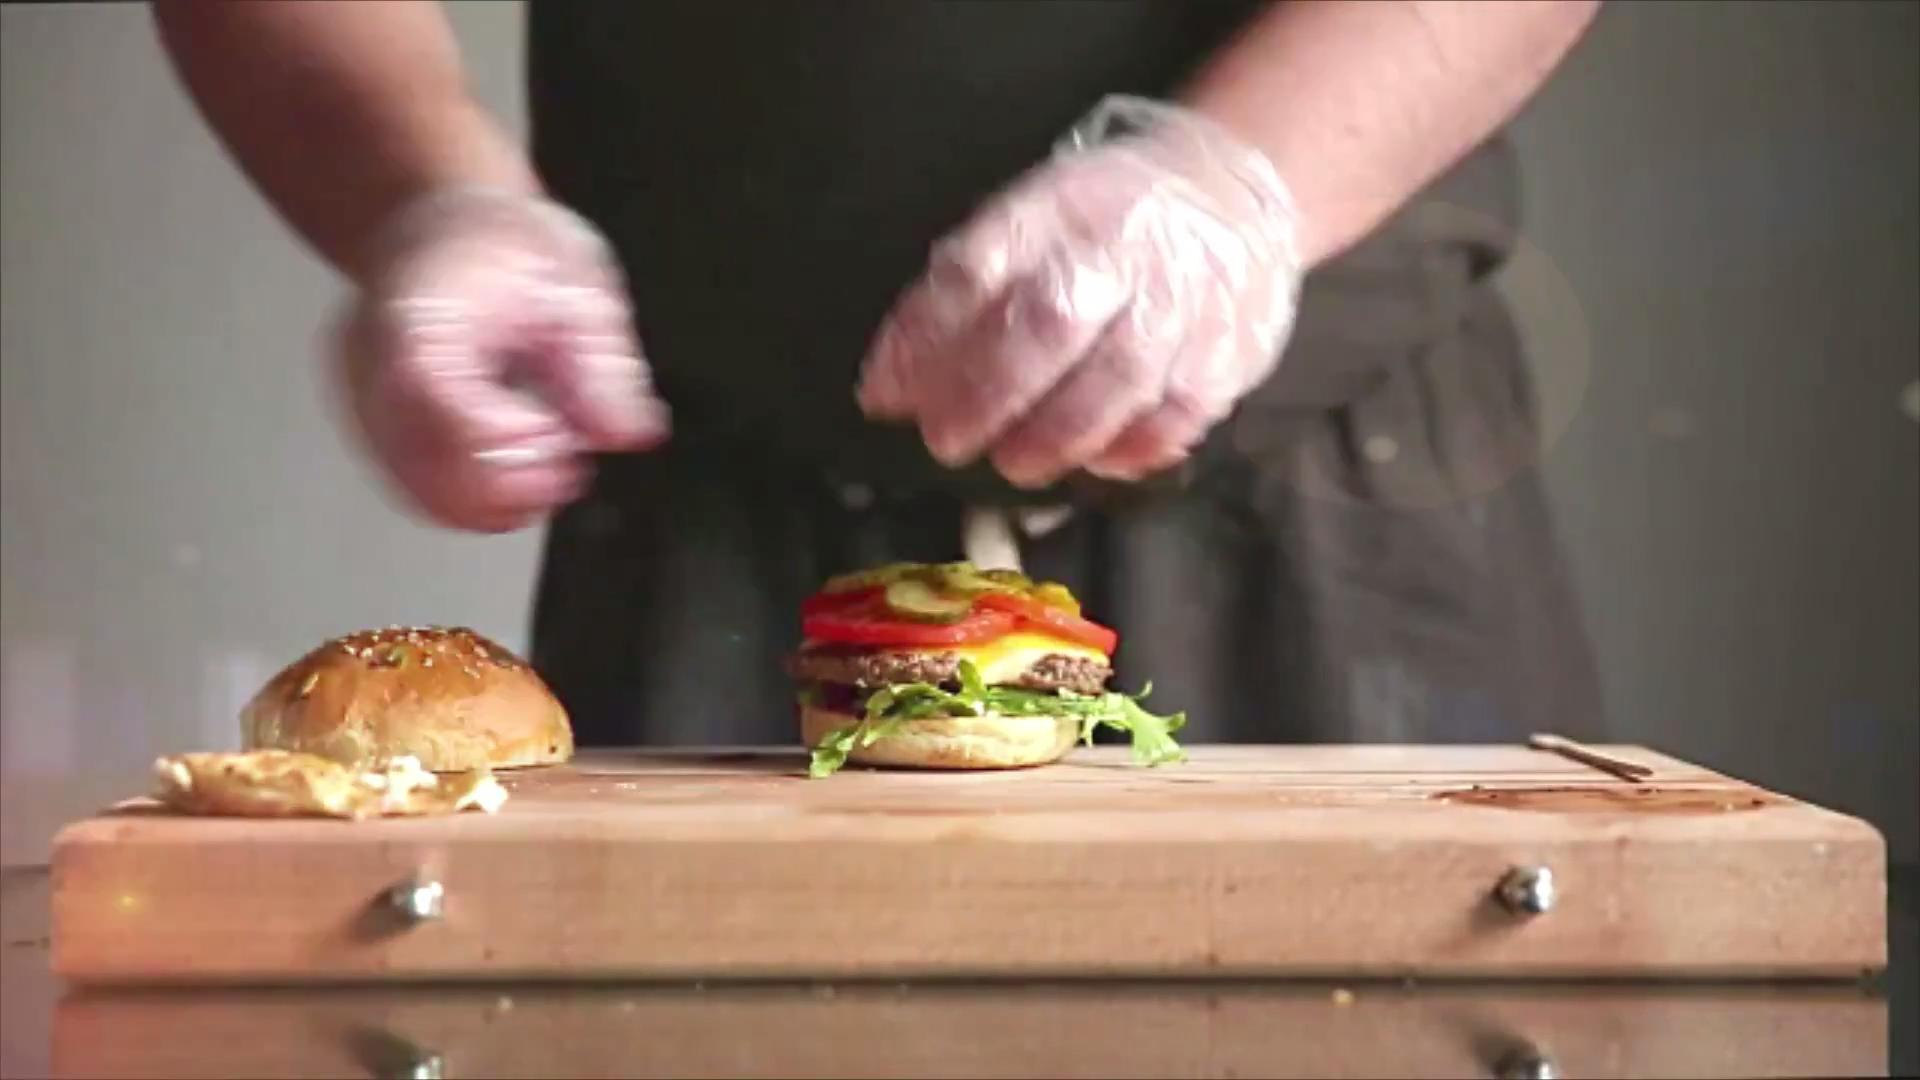 7 Simple Ways to Make a Better Burger at Home, According to Chefs